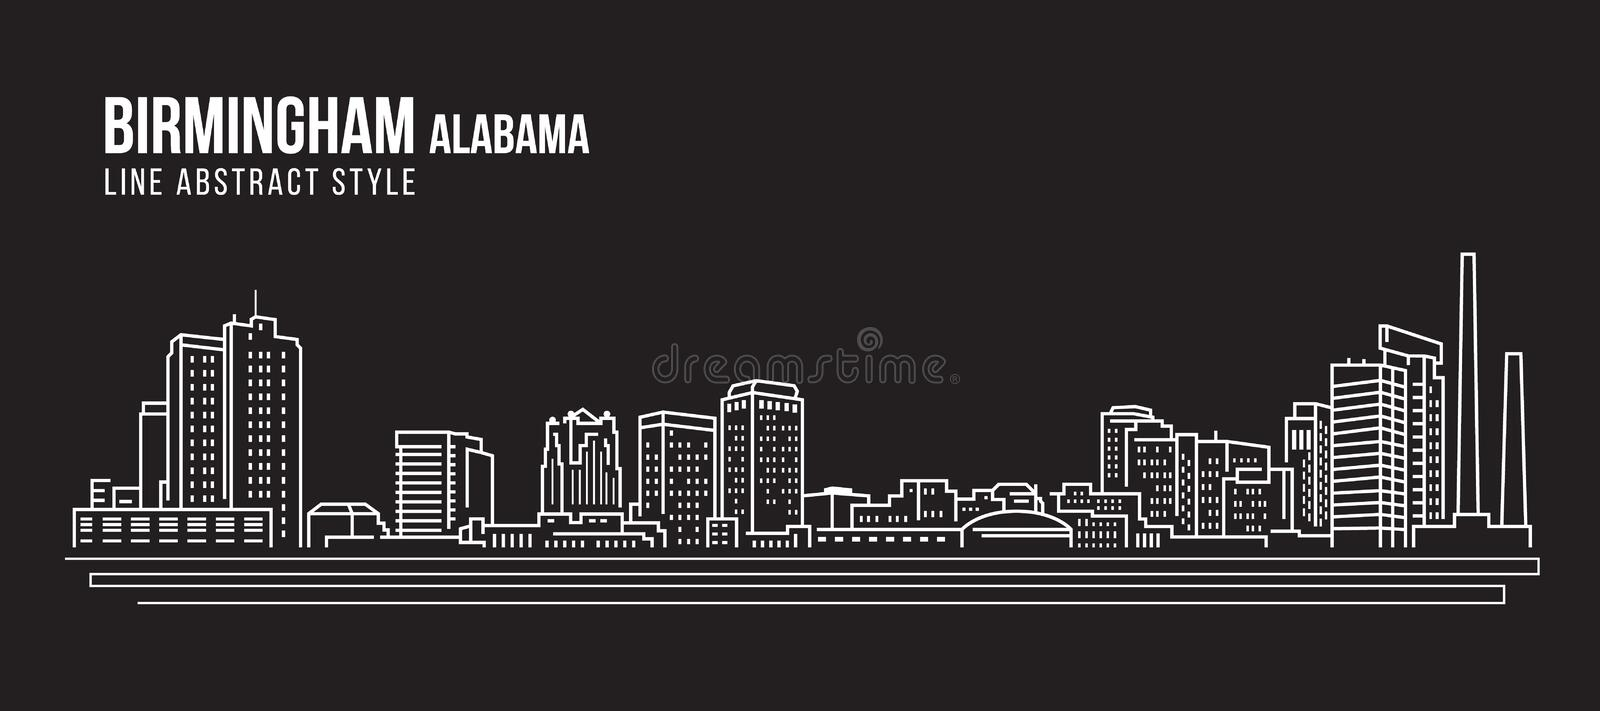 Cityscape Building Line art Vector Illustration design - Birmingham city Alabama stock illustration